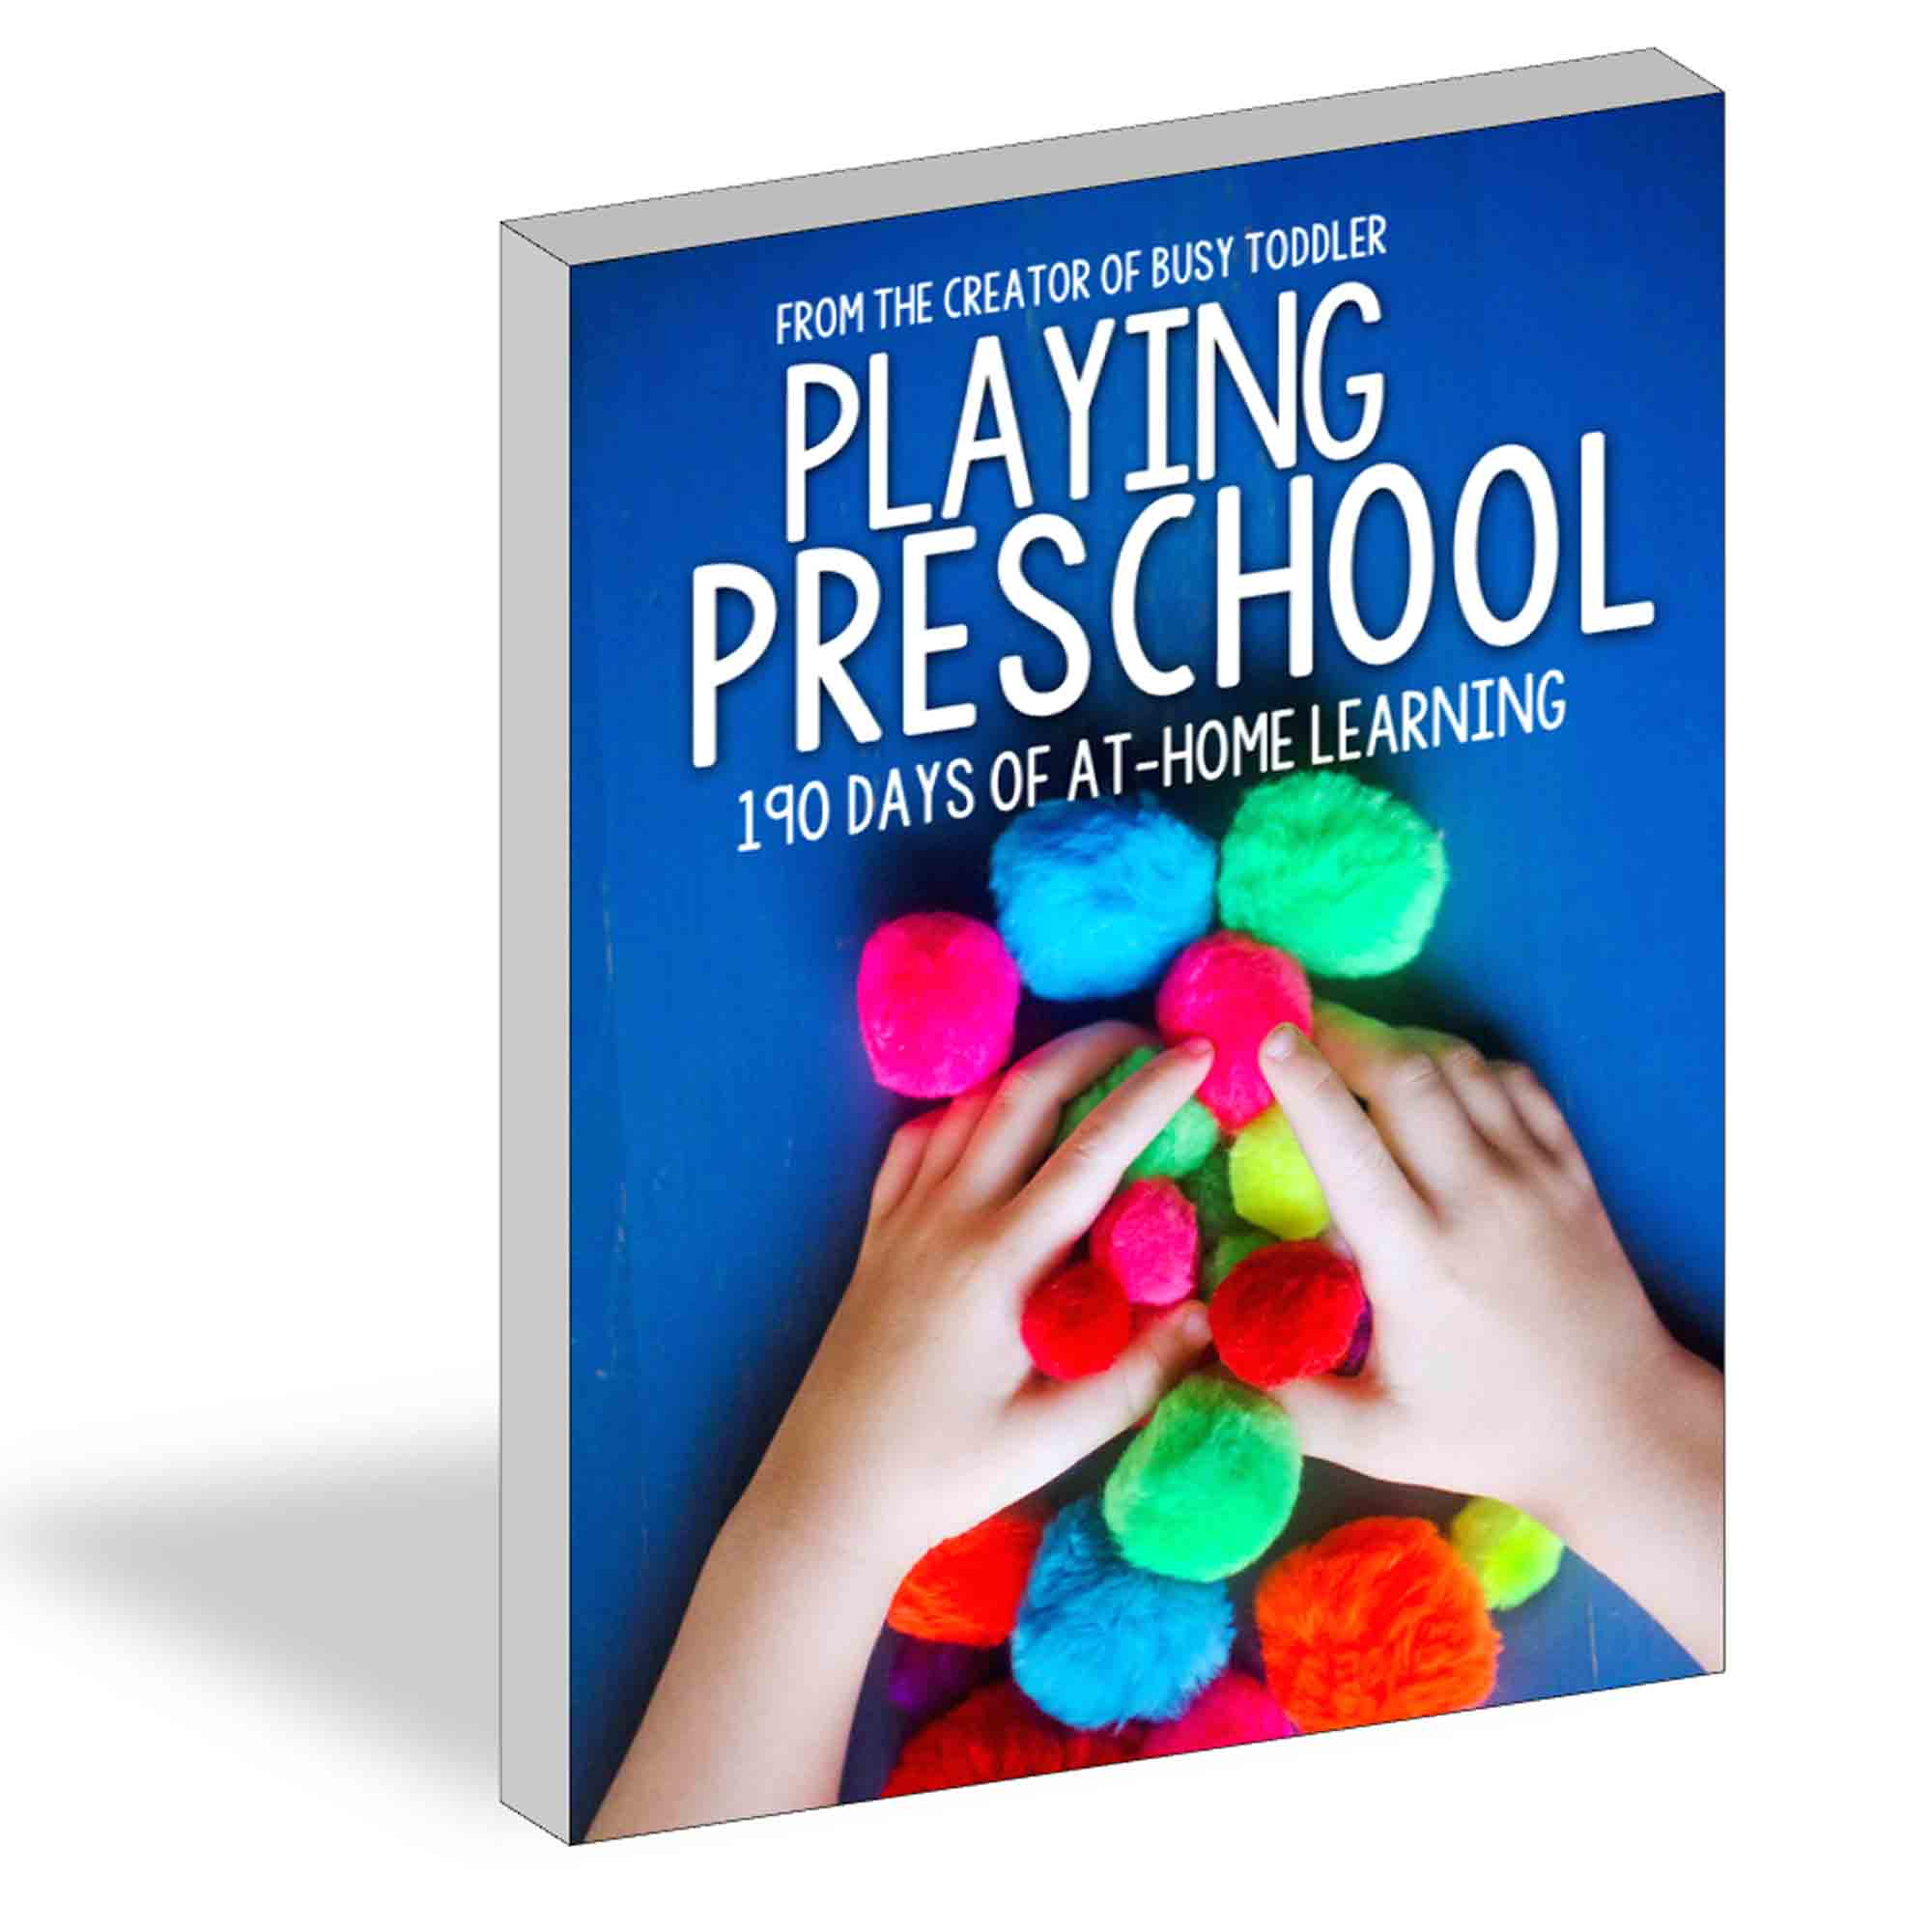 HOMESCHOOL PRESCHOOL CURRICULUM: Meet Playing Preschool - 190 days of at-home learning for preschoolers; easy activities for preschoolers; home preschool program; alphabet activities; quick and easy learning activities from Busy Toddler